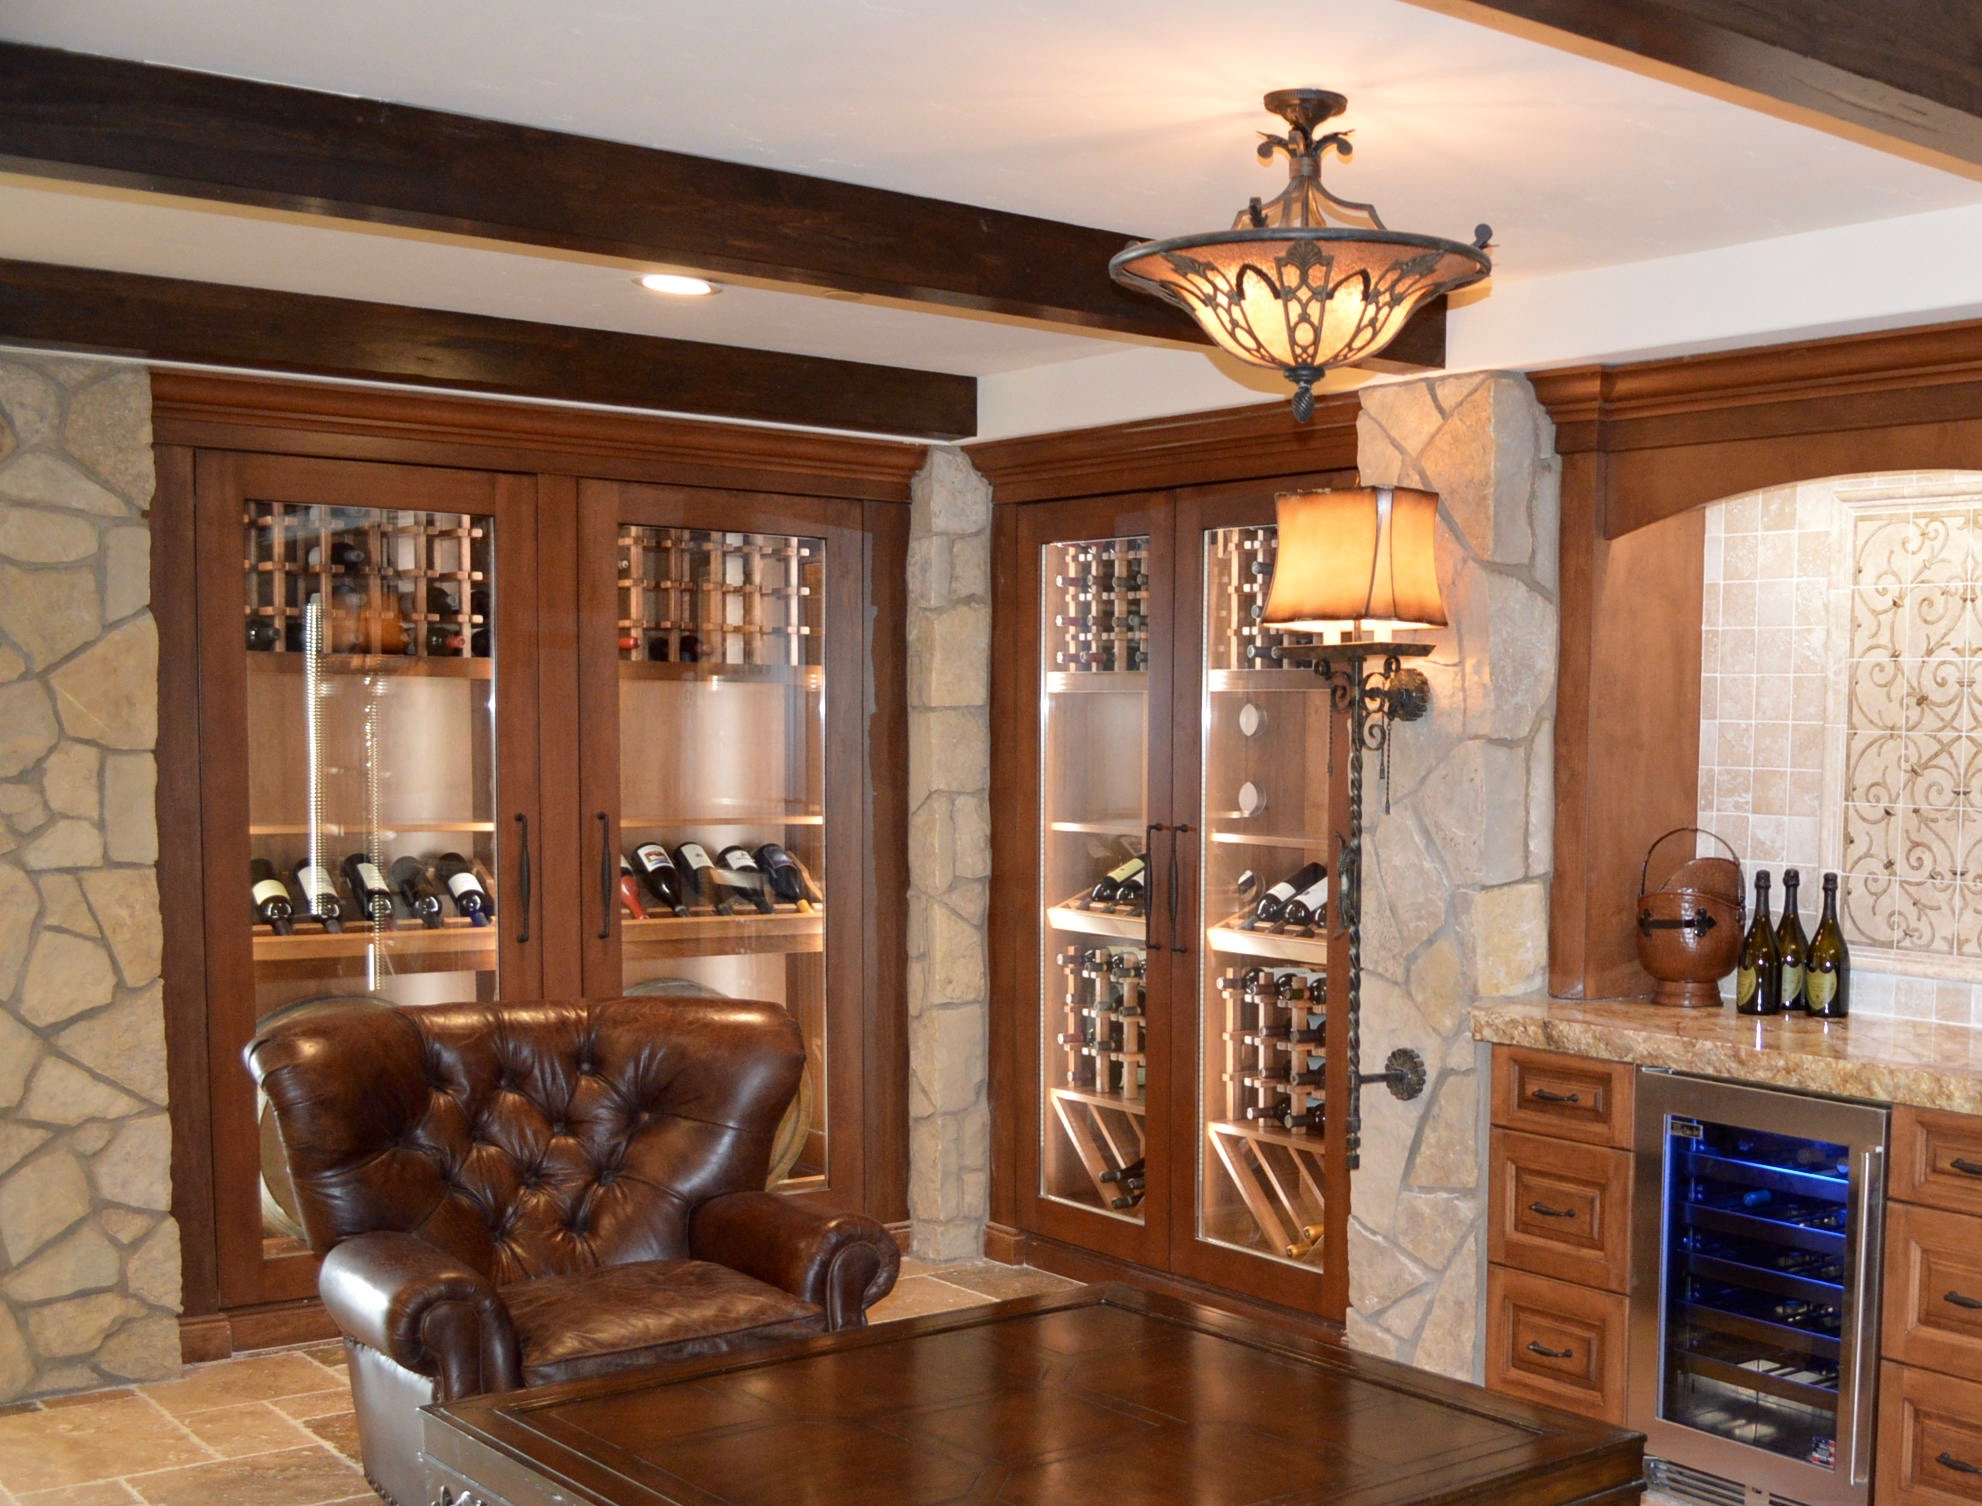 Arctic Metalworks Inc. recently worked with a client who owned four gorgeous custom wine cabinets in a luxury home in Laguna Beach, Canada. The HVAC experts had to find the best refrigeration equipment that could cool the wine storage structure.